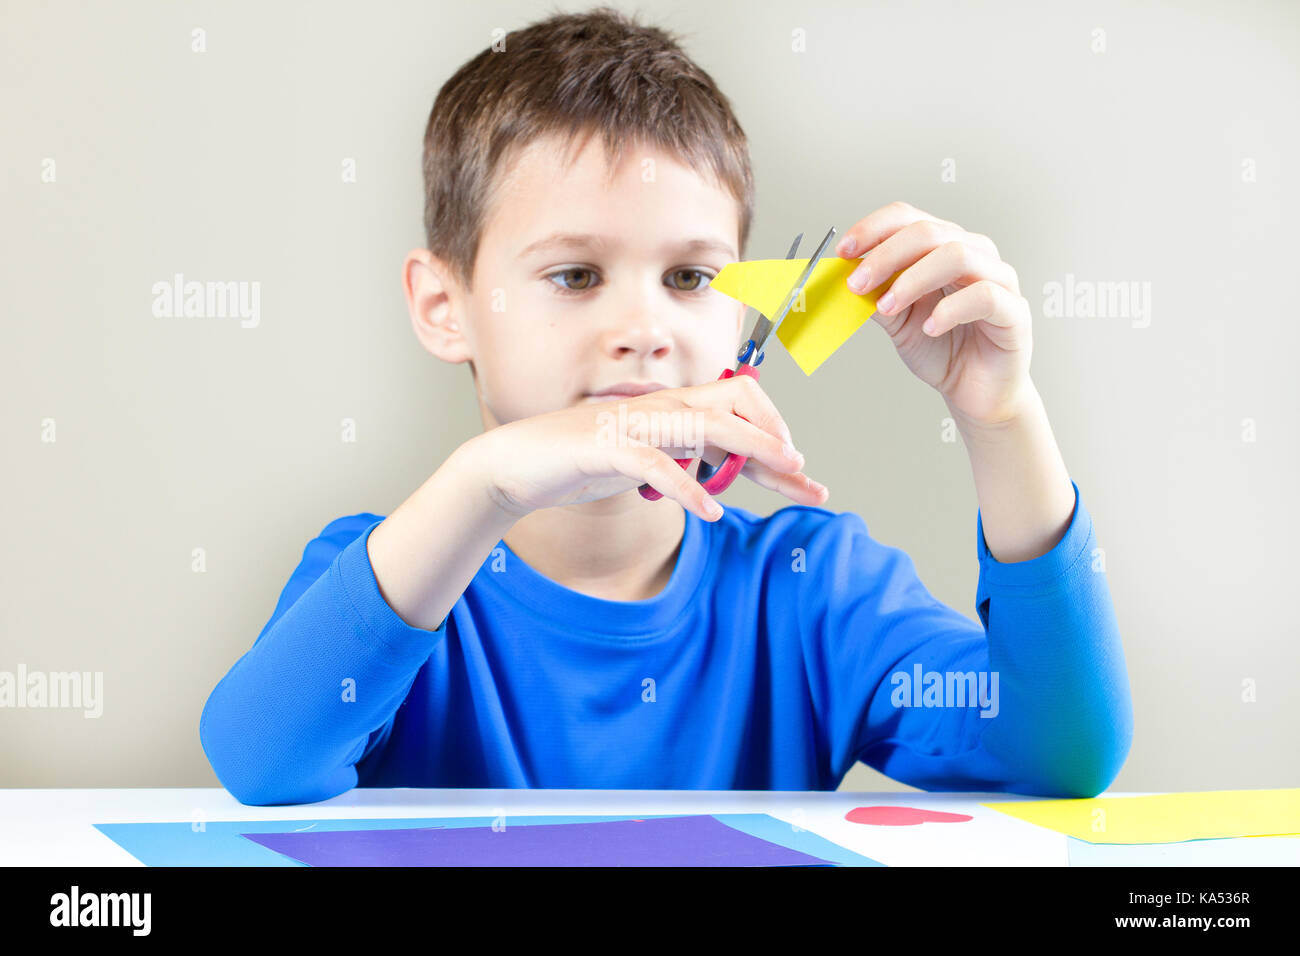 Boy cutting colored paper with scissors at the table - Stock Image